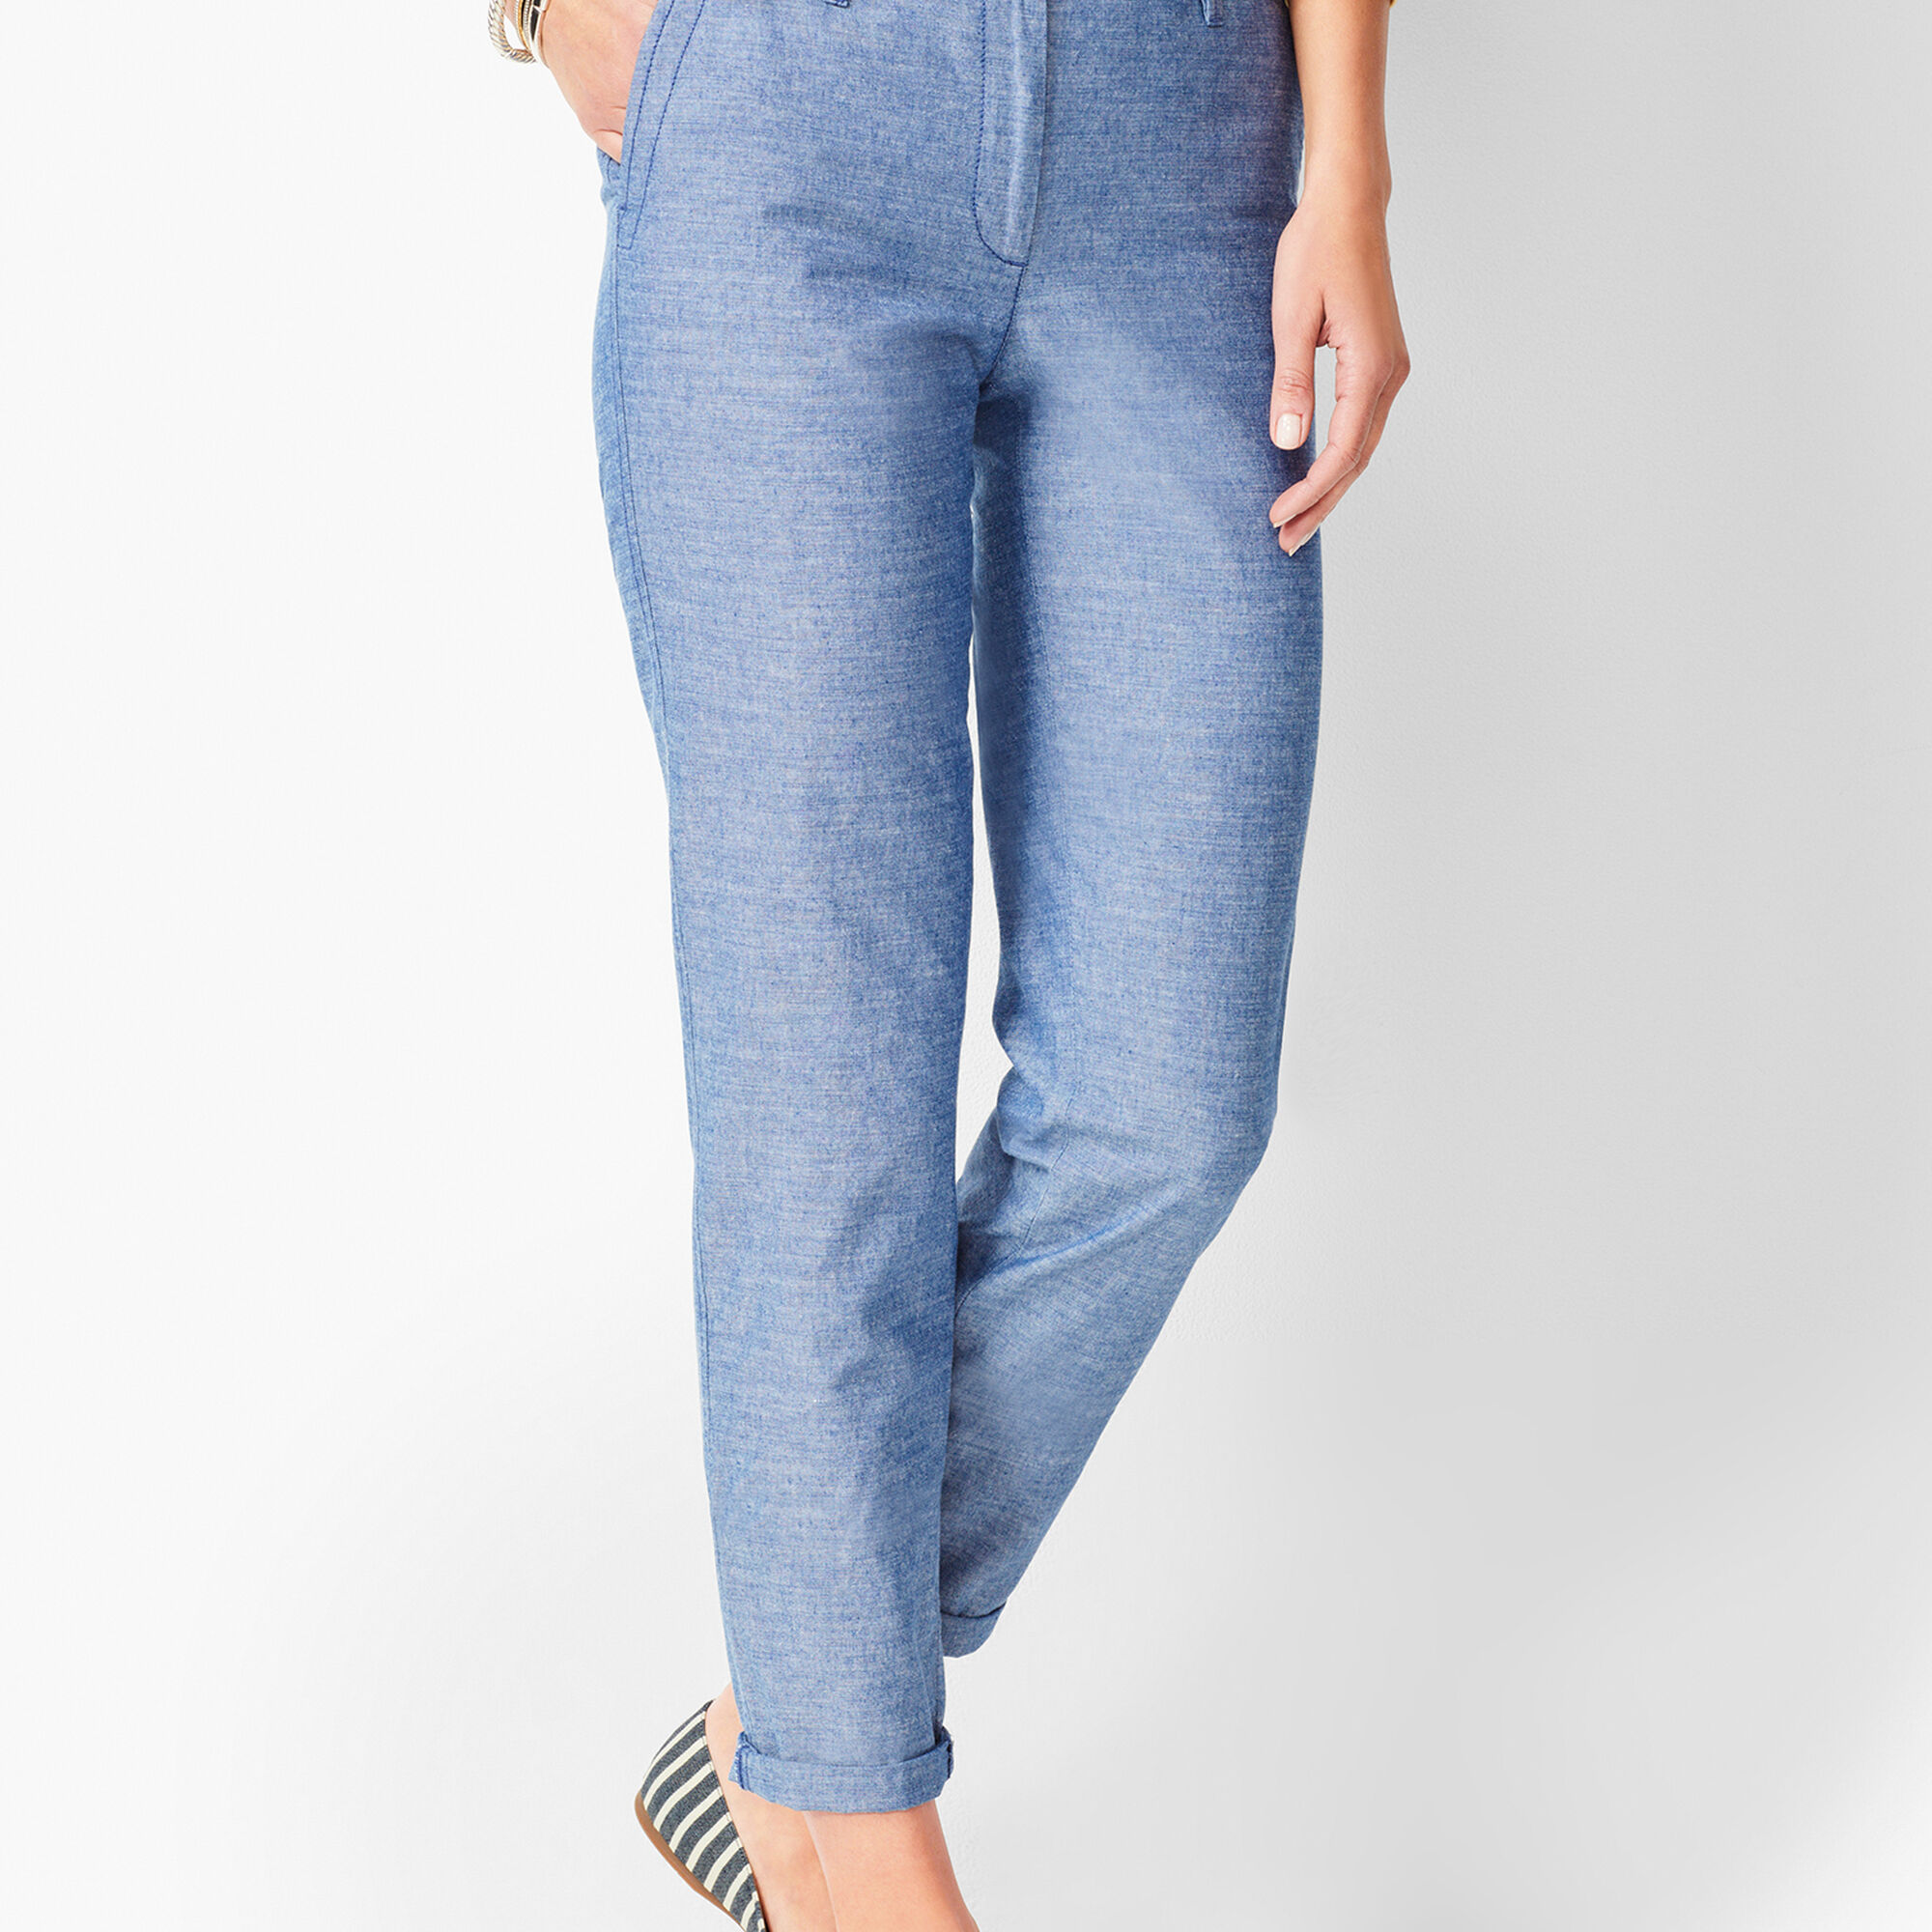 5a57fdfee6b Images. Girlfriend Chinos - Chambray